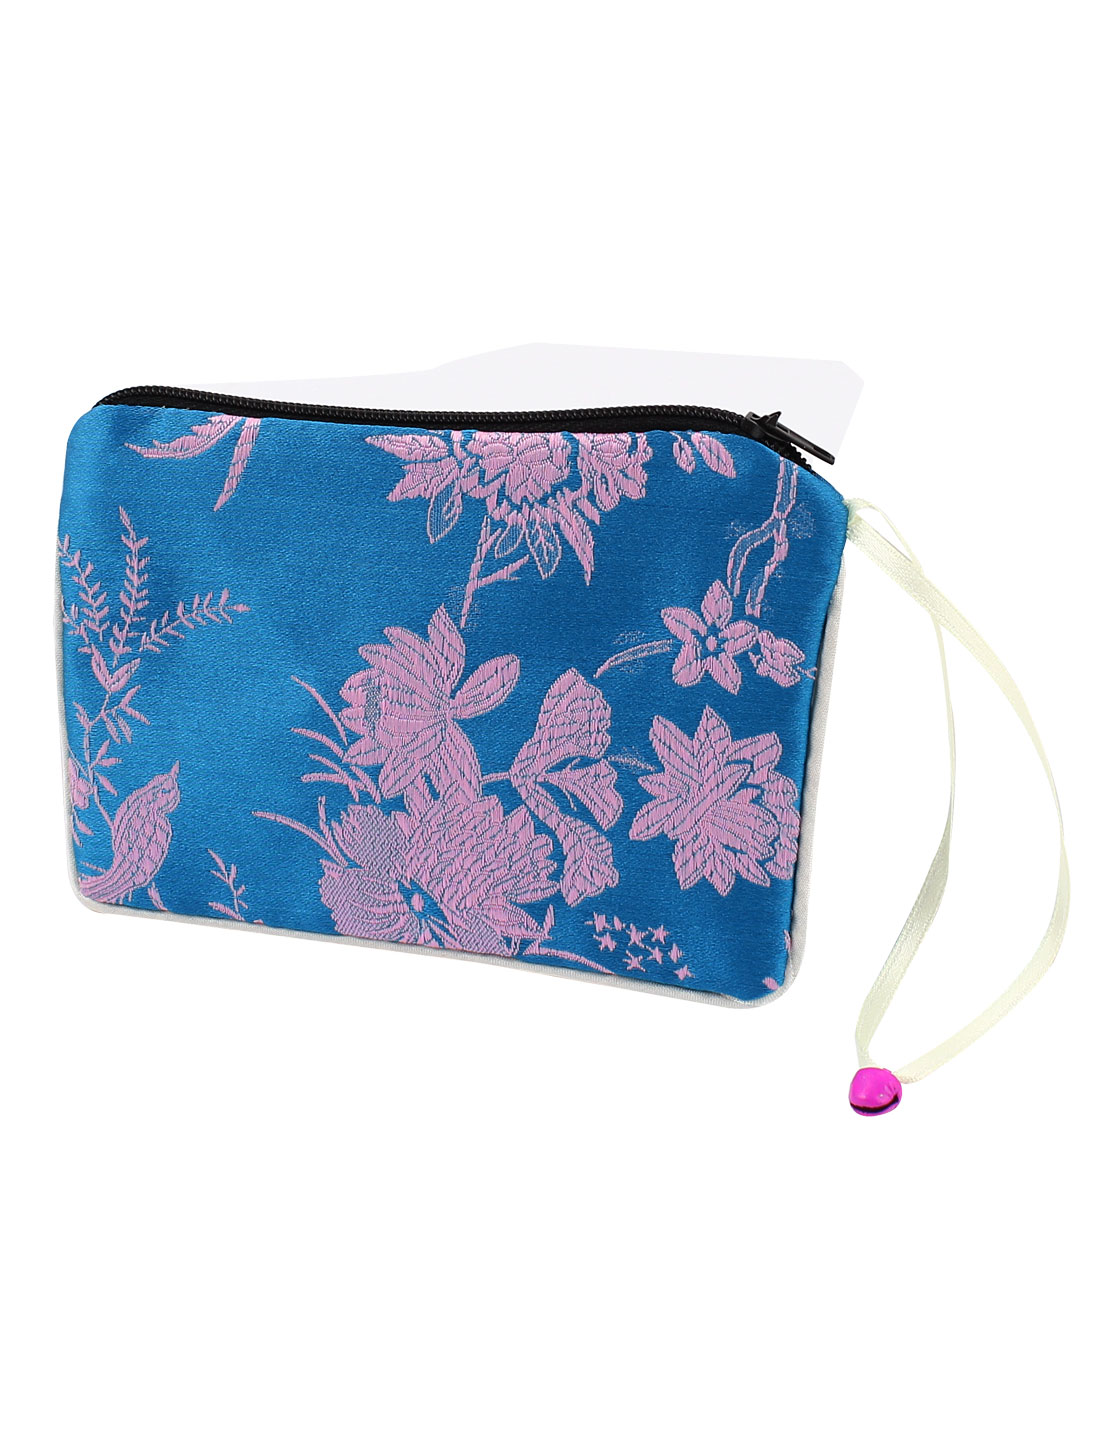 Women Brocade Rectangular Flower Pattern Zipper Closure Cash Coin Purse Bag Sky Blue